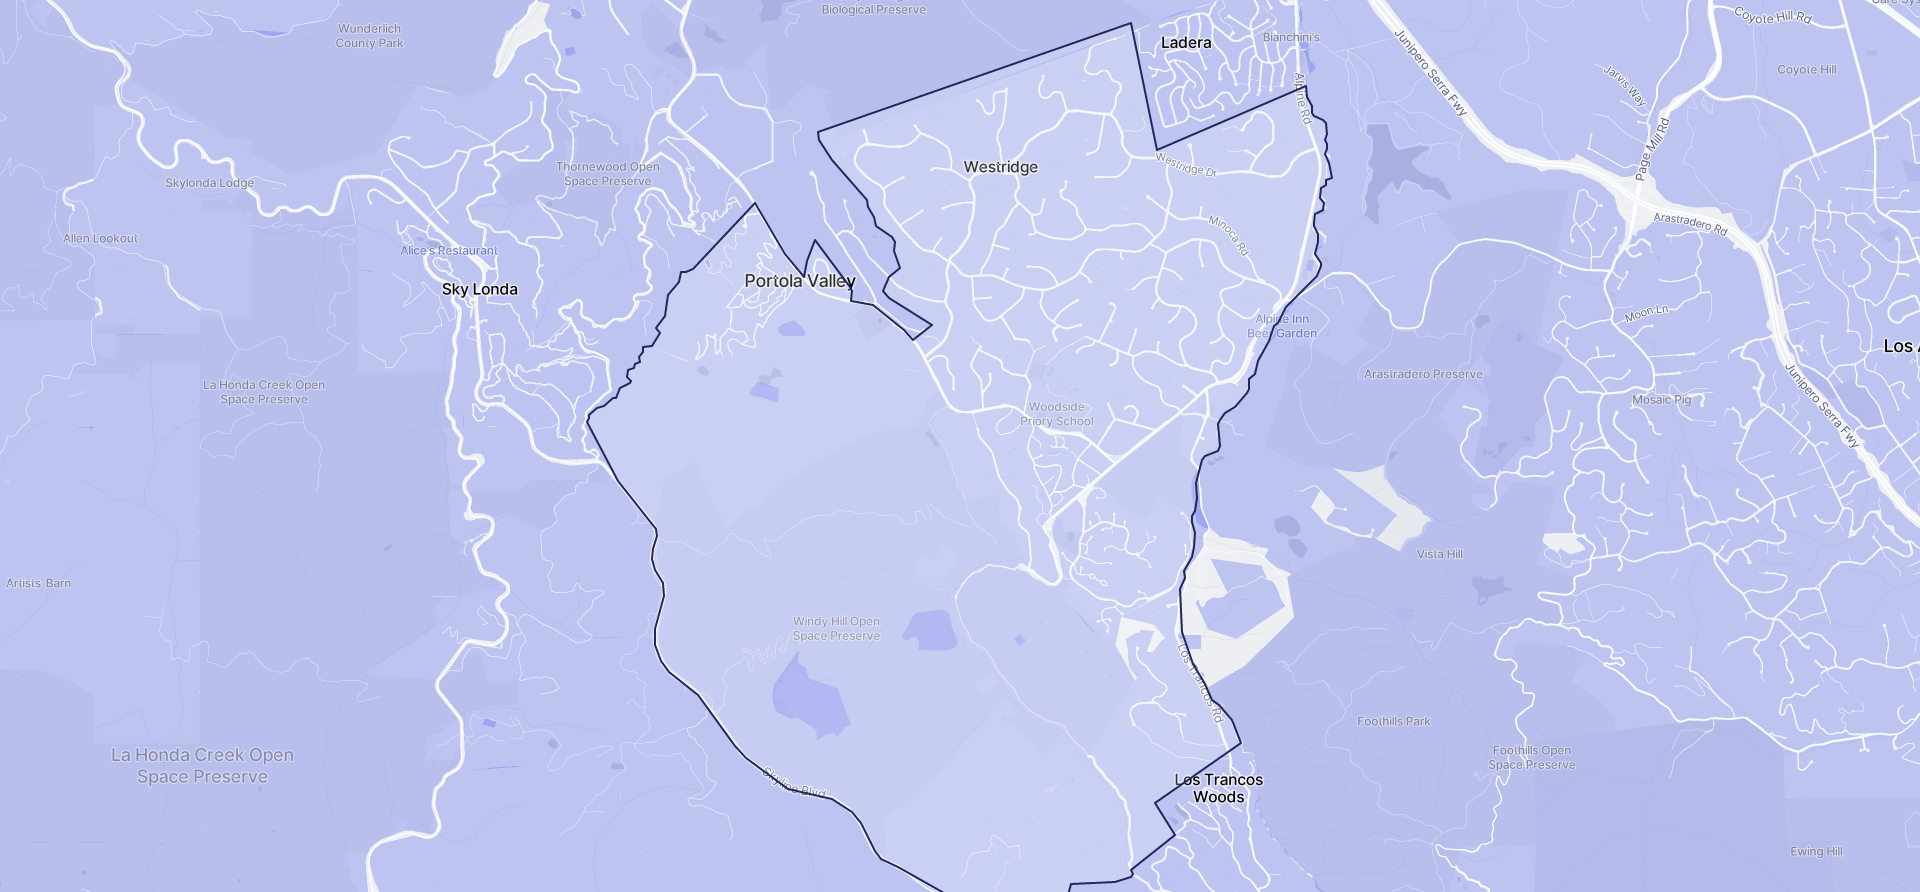 Image of Portola Valley boundaries on a map.